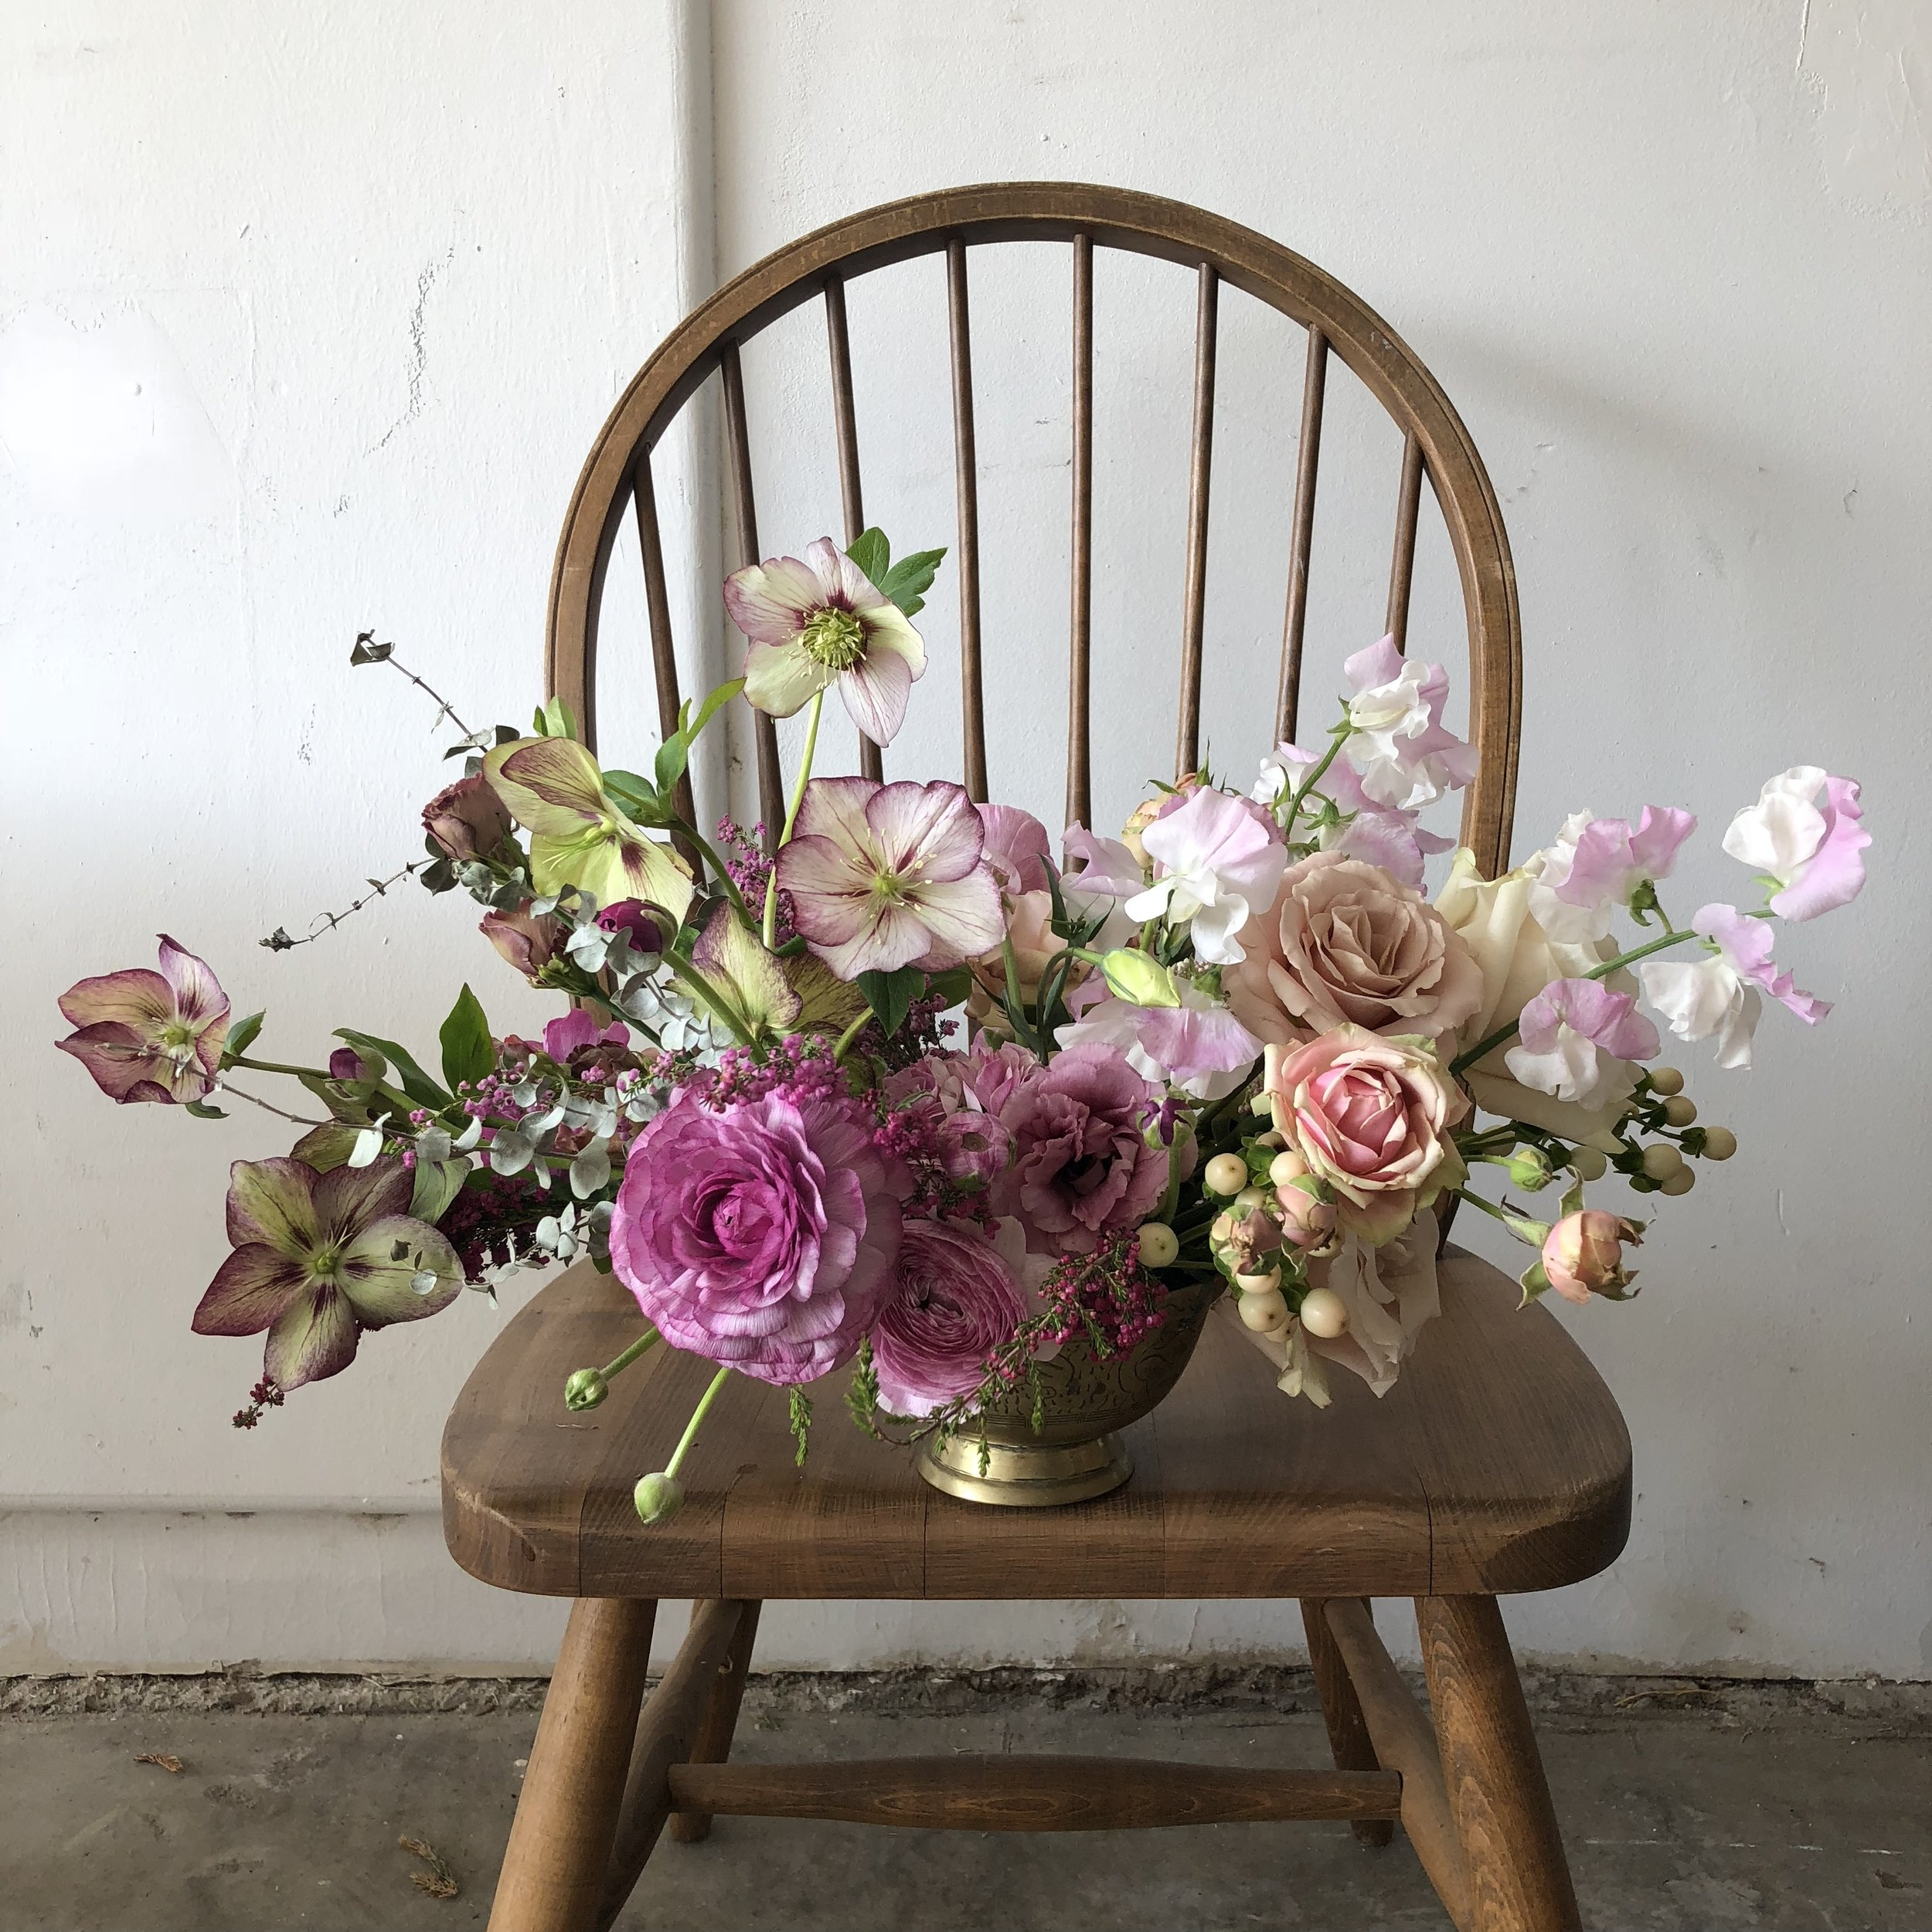 NECTAR + BLOOM || FLORAL ARRANGEMENT ON CHAIR IN BLUSH CORAL MAUVE